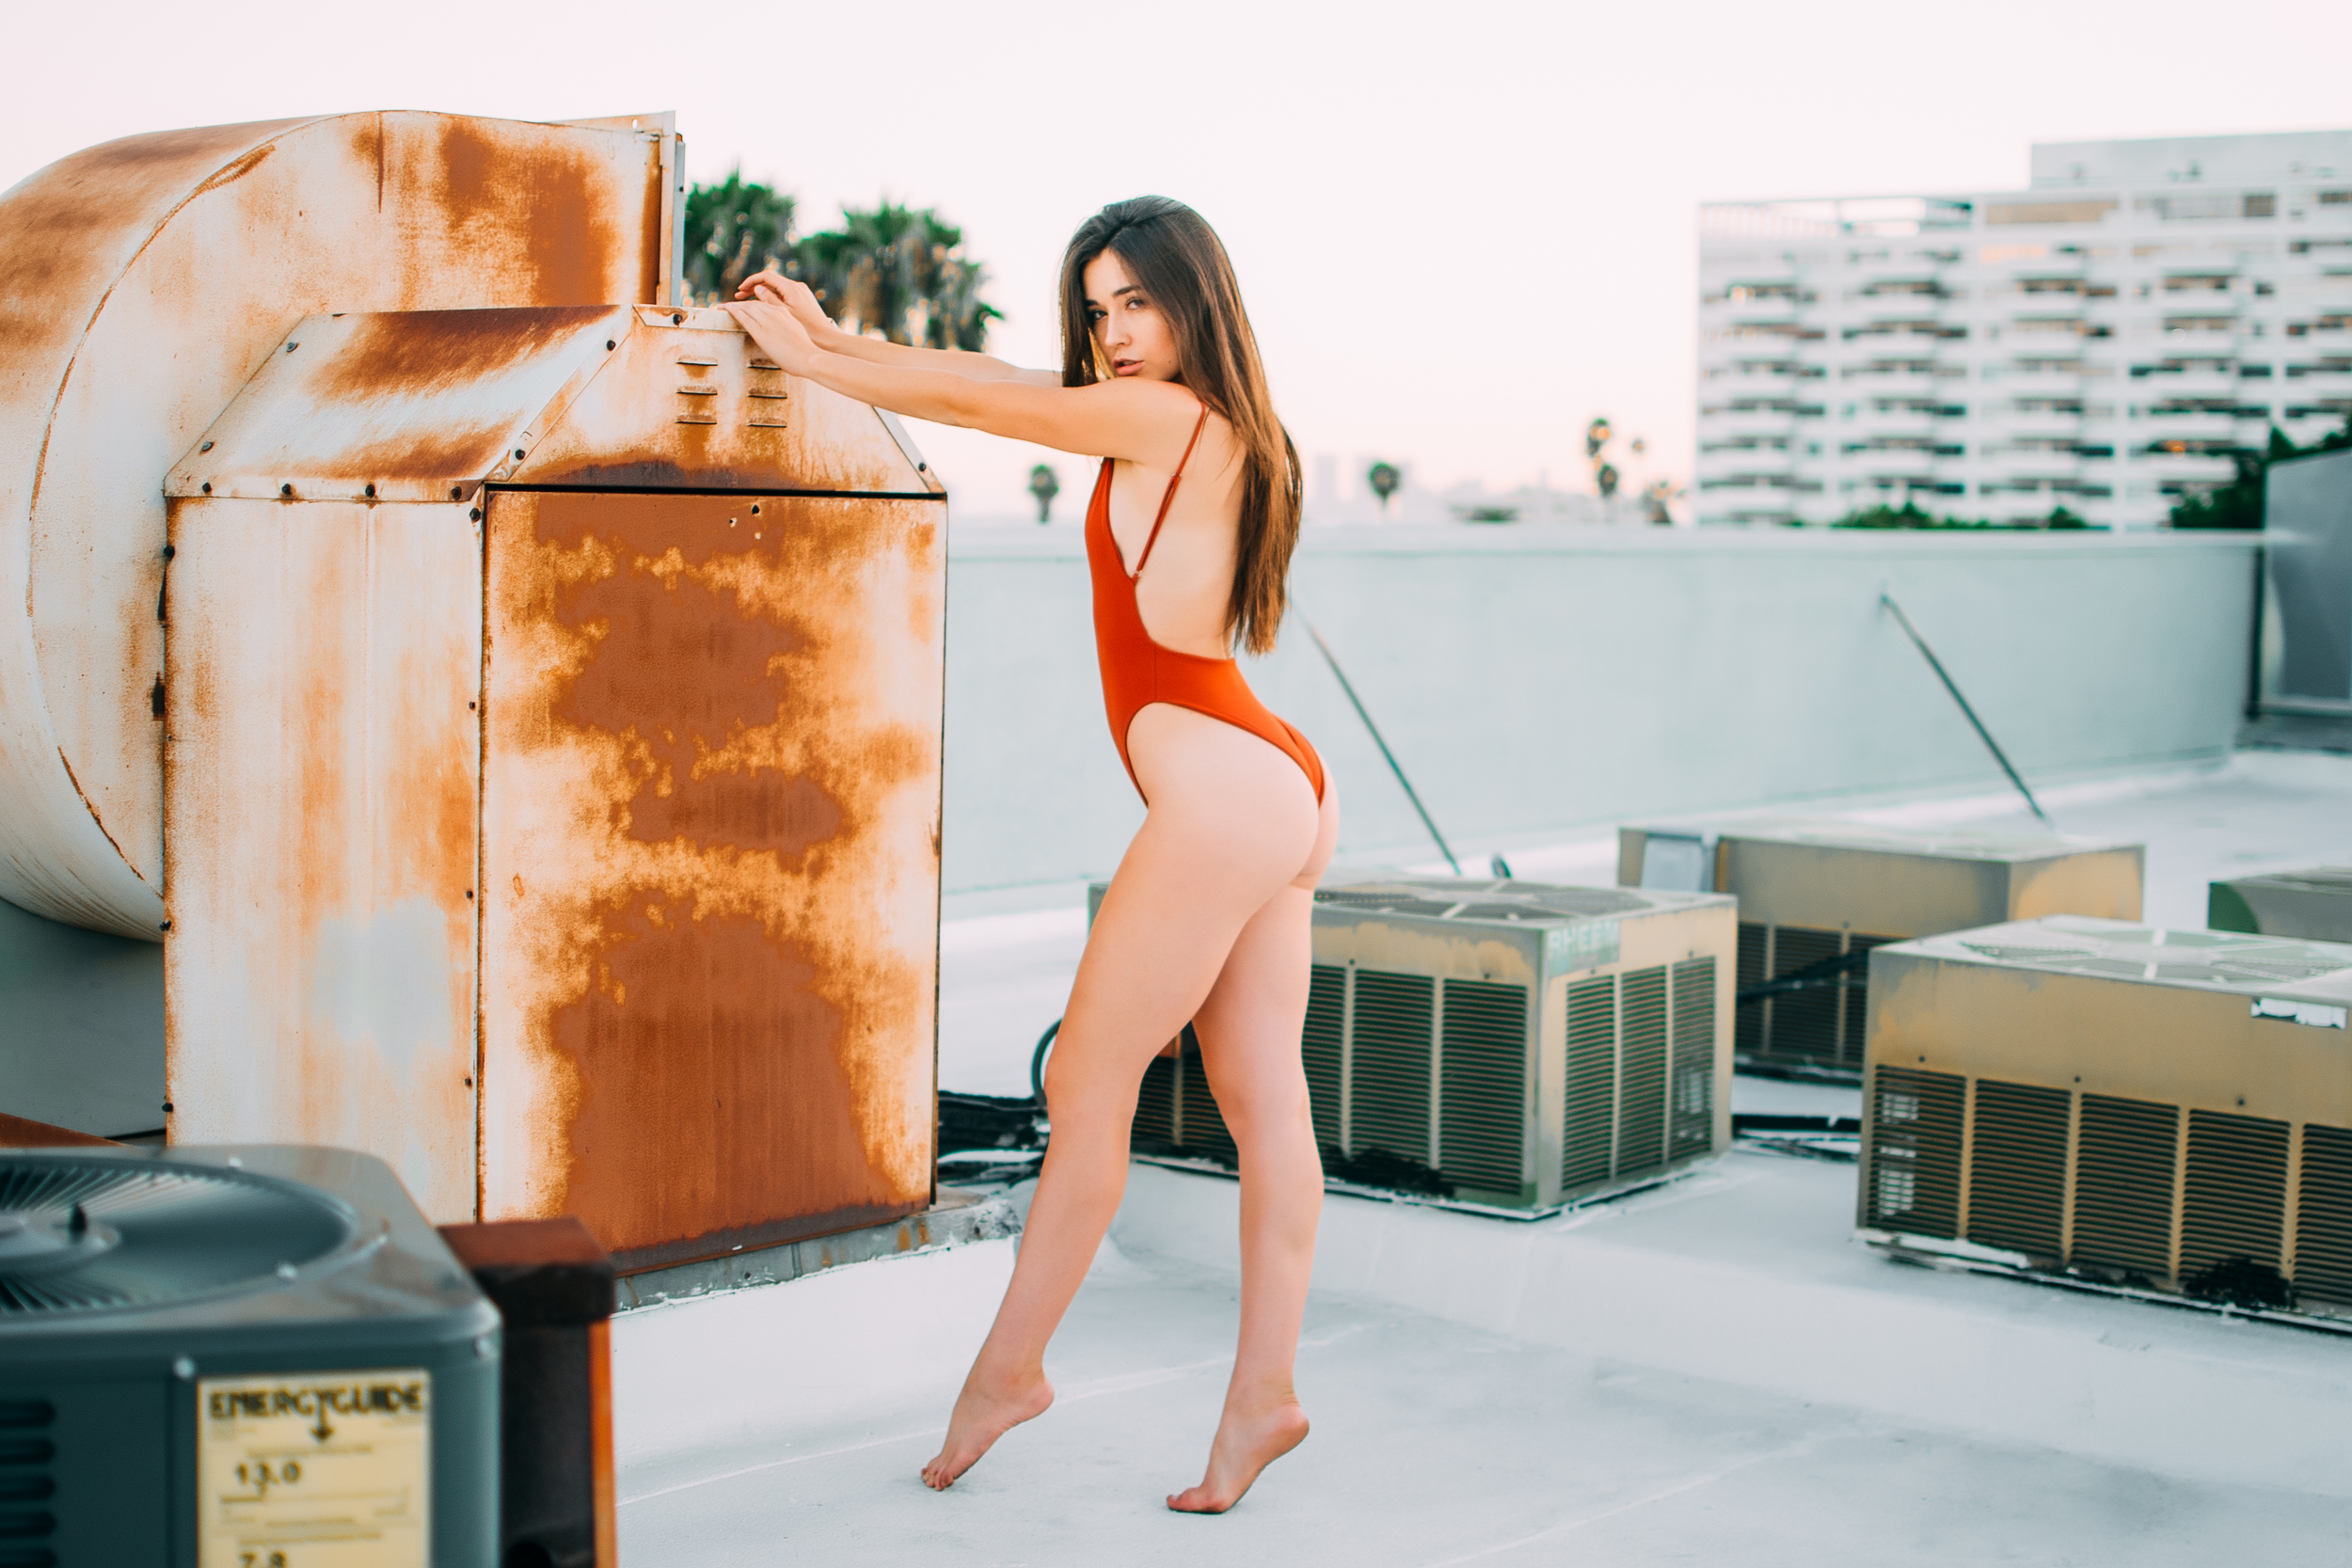 People 2500x1667 Audrey Bradford model Christian Montoya one-piece swimsuit monokinis ass women brunette long hair looking at viewer sensual gaze barefoot standing rooftops depth of field women outdoors tiptoe